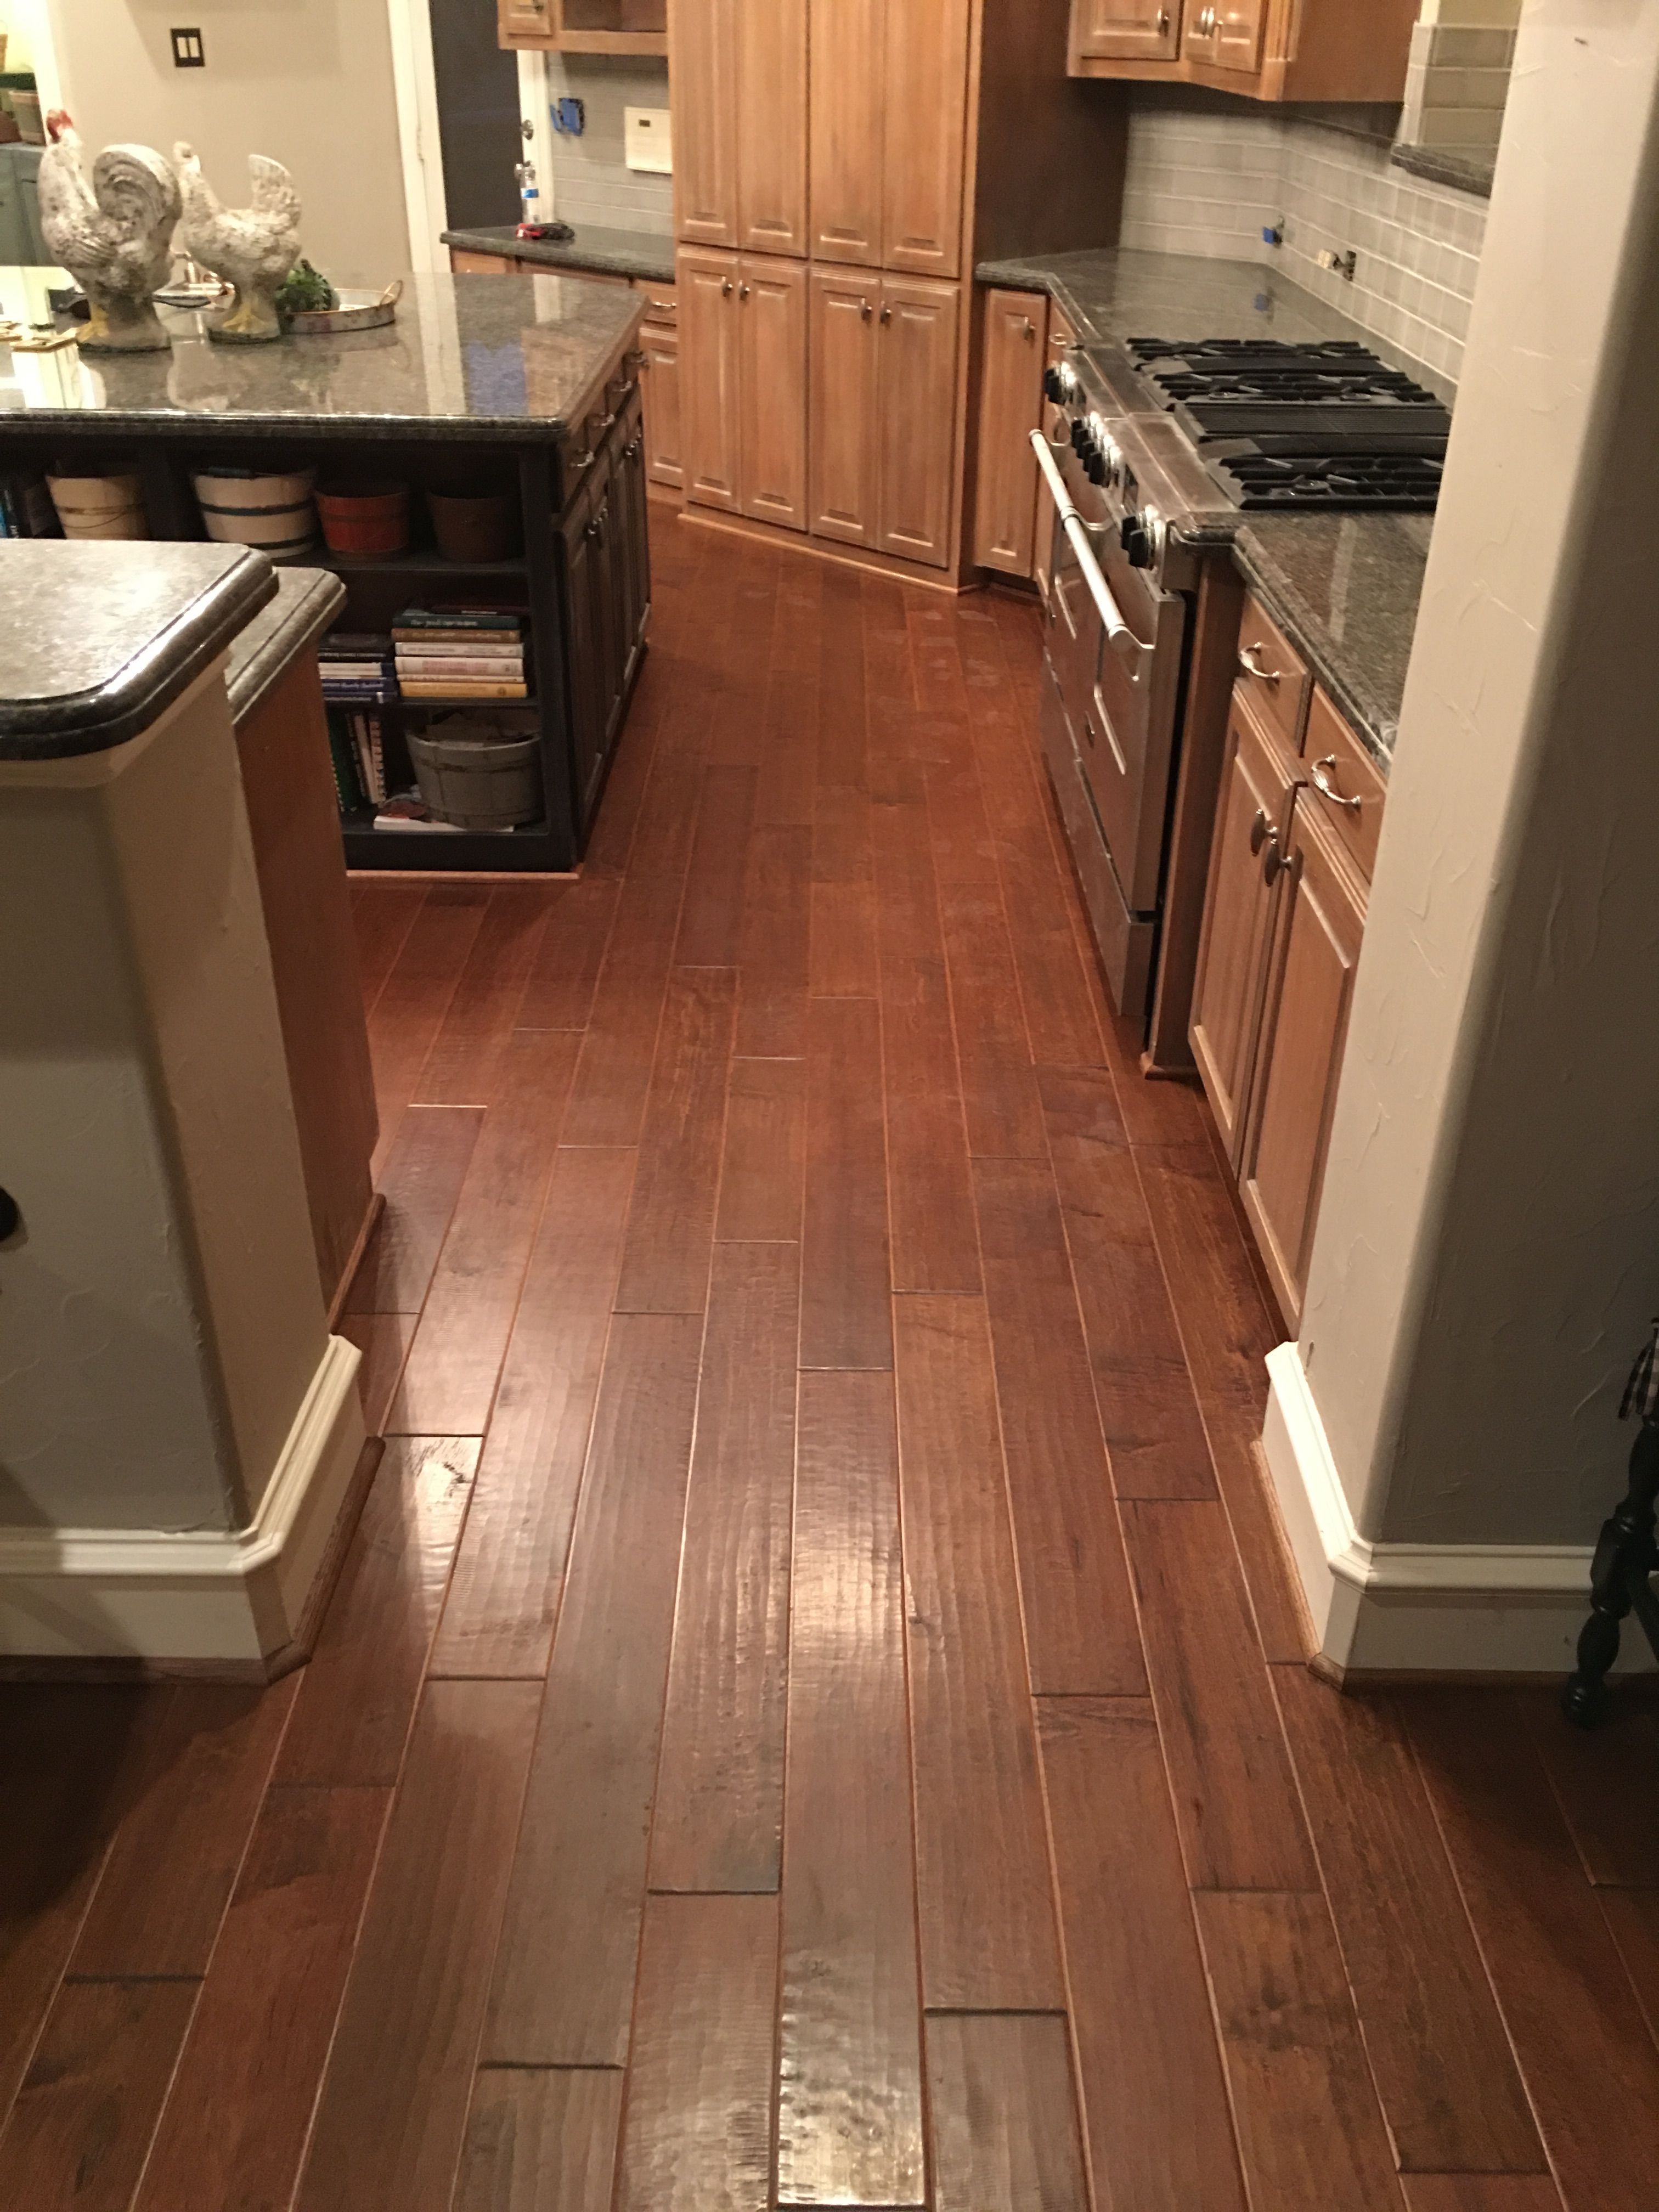 Virginia Vintage Hand Scrape Maple Risling Luxury Vinyl Plank Flooring Luxury Vinyl Plank Vinyl Plank Flooring